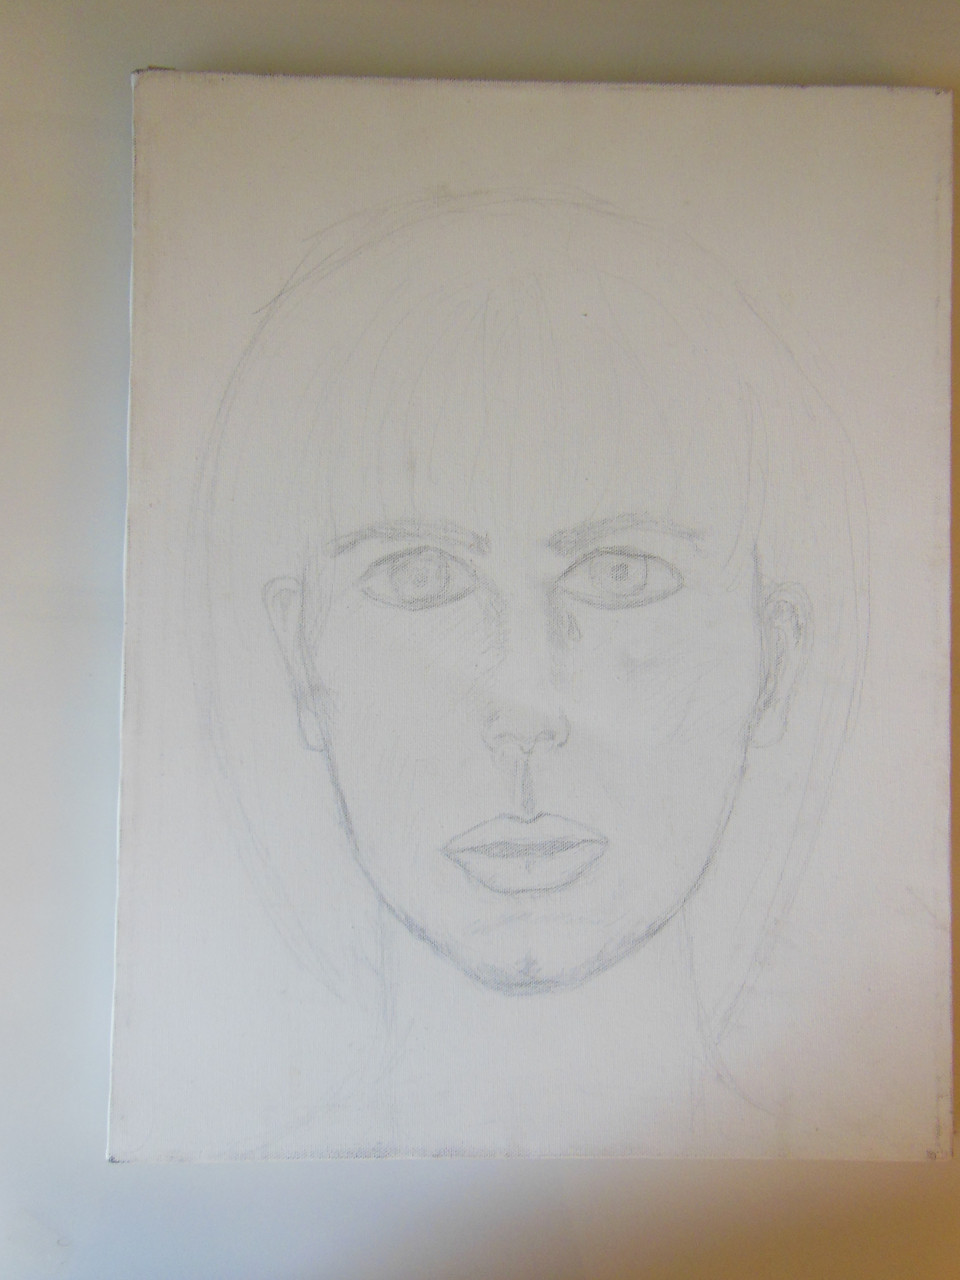 Unfinished Self Portrait with tear. Pencil on paper